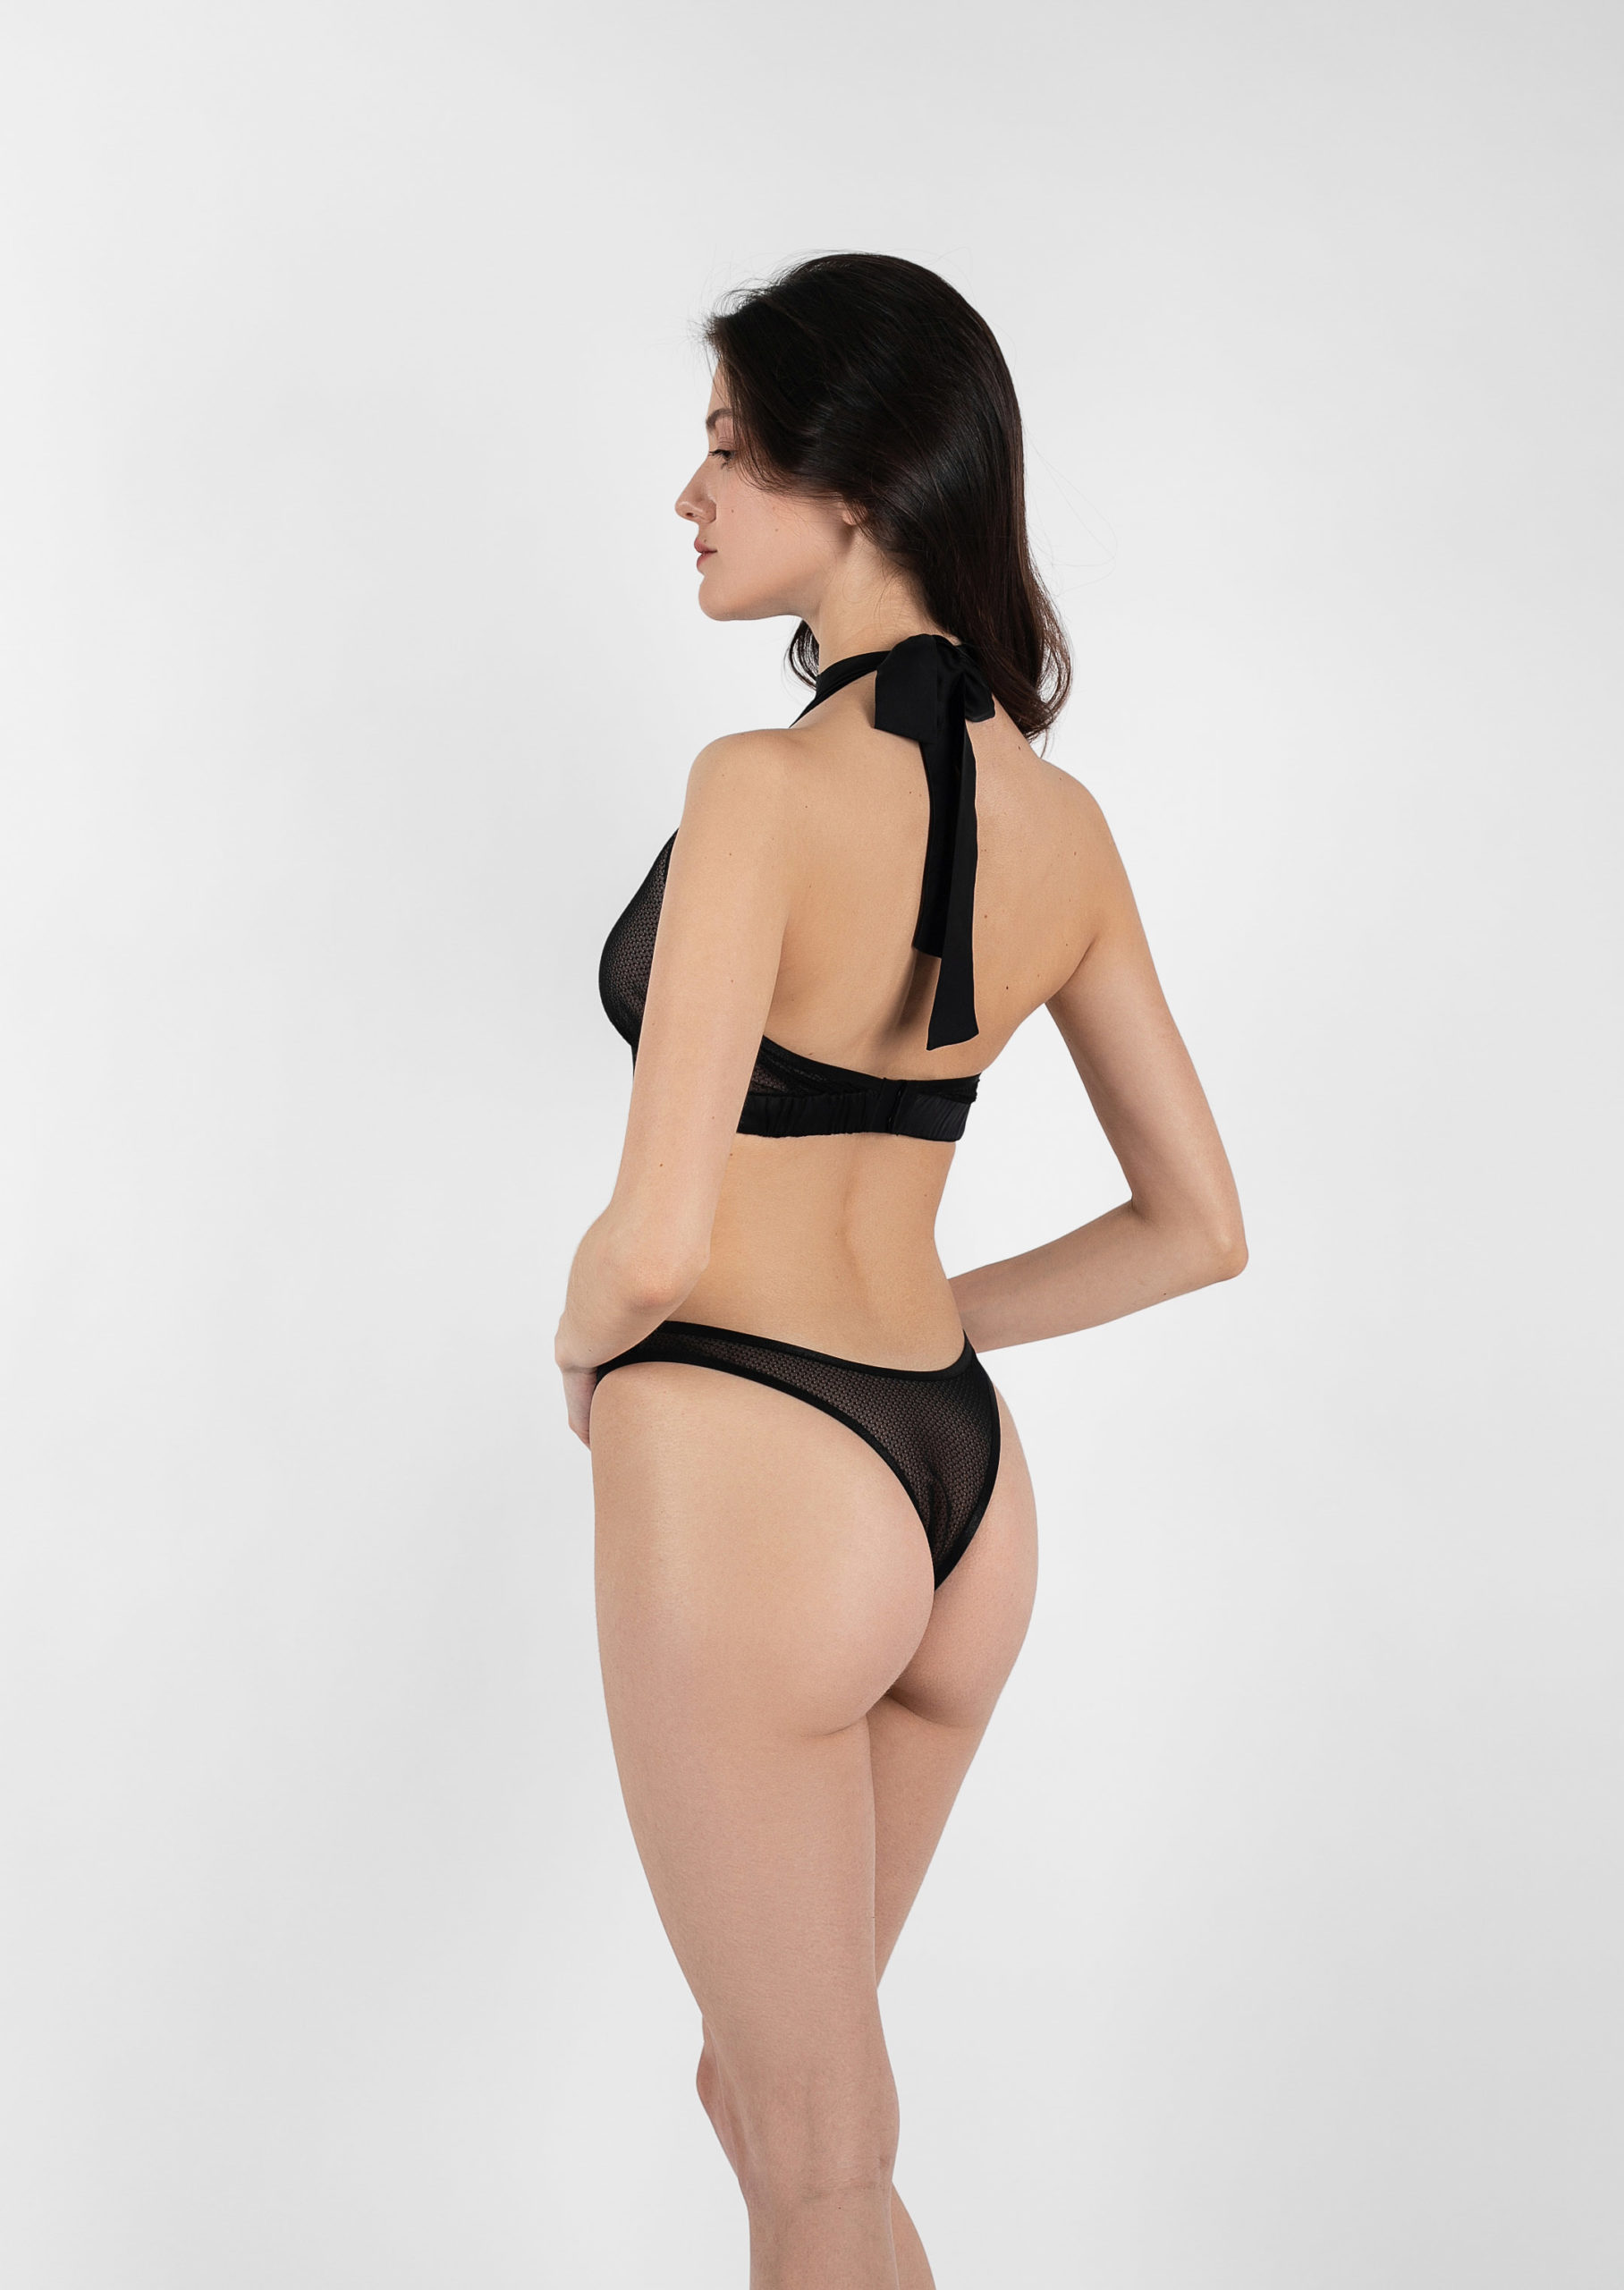 Mystery lingerie set / sexy black strappy lingerie with garter belt / transparent panties with underwired bra with high waist belt